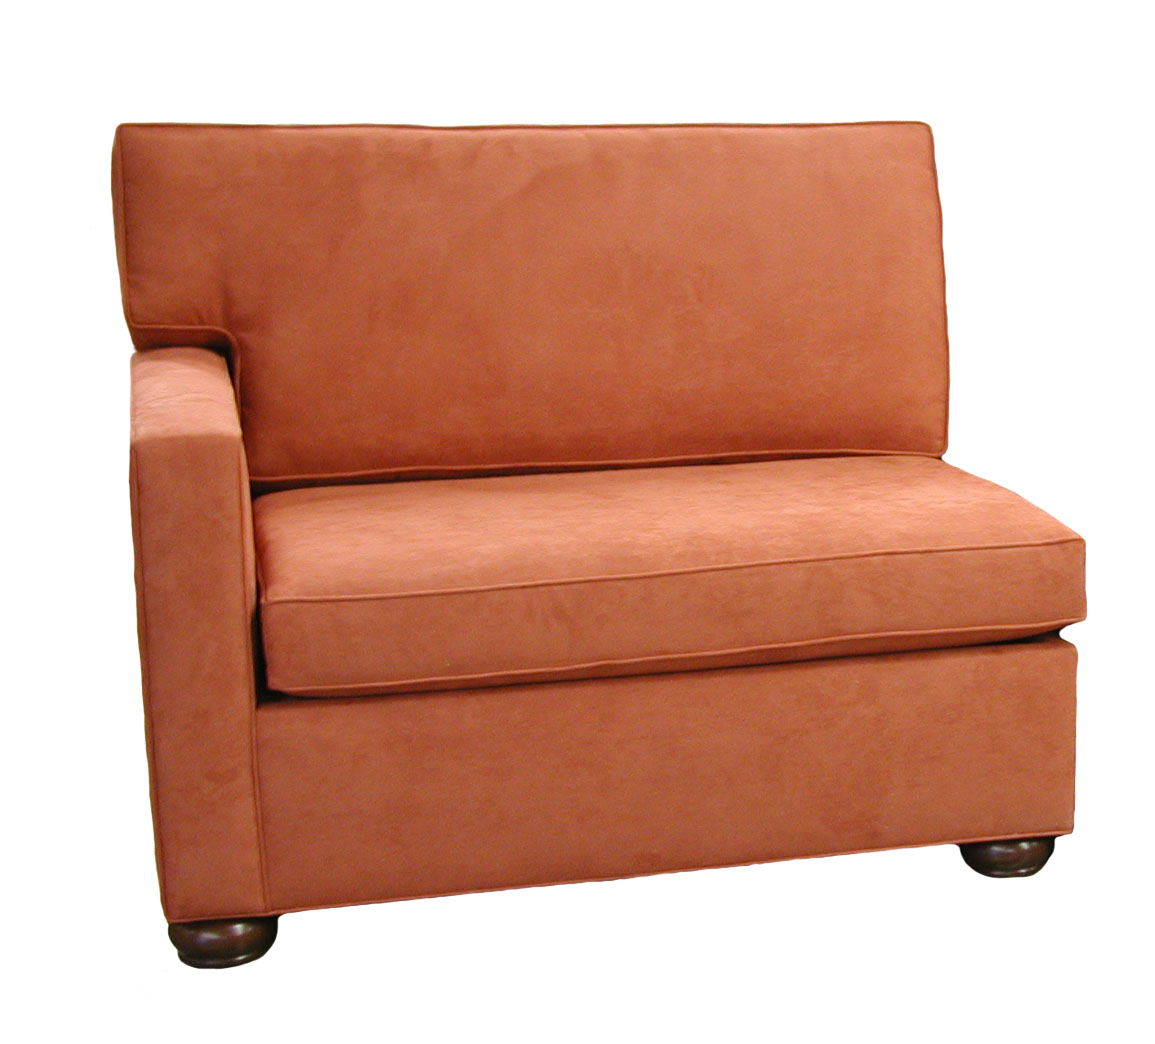 Crawford 1-Arm Single Sleeper Sofa Left Facing